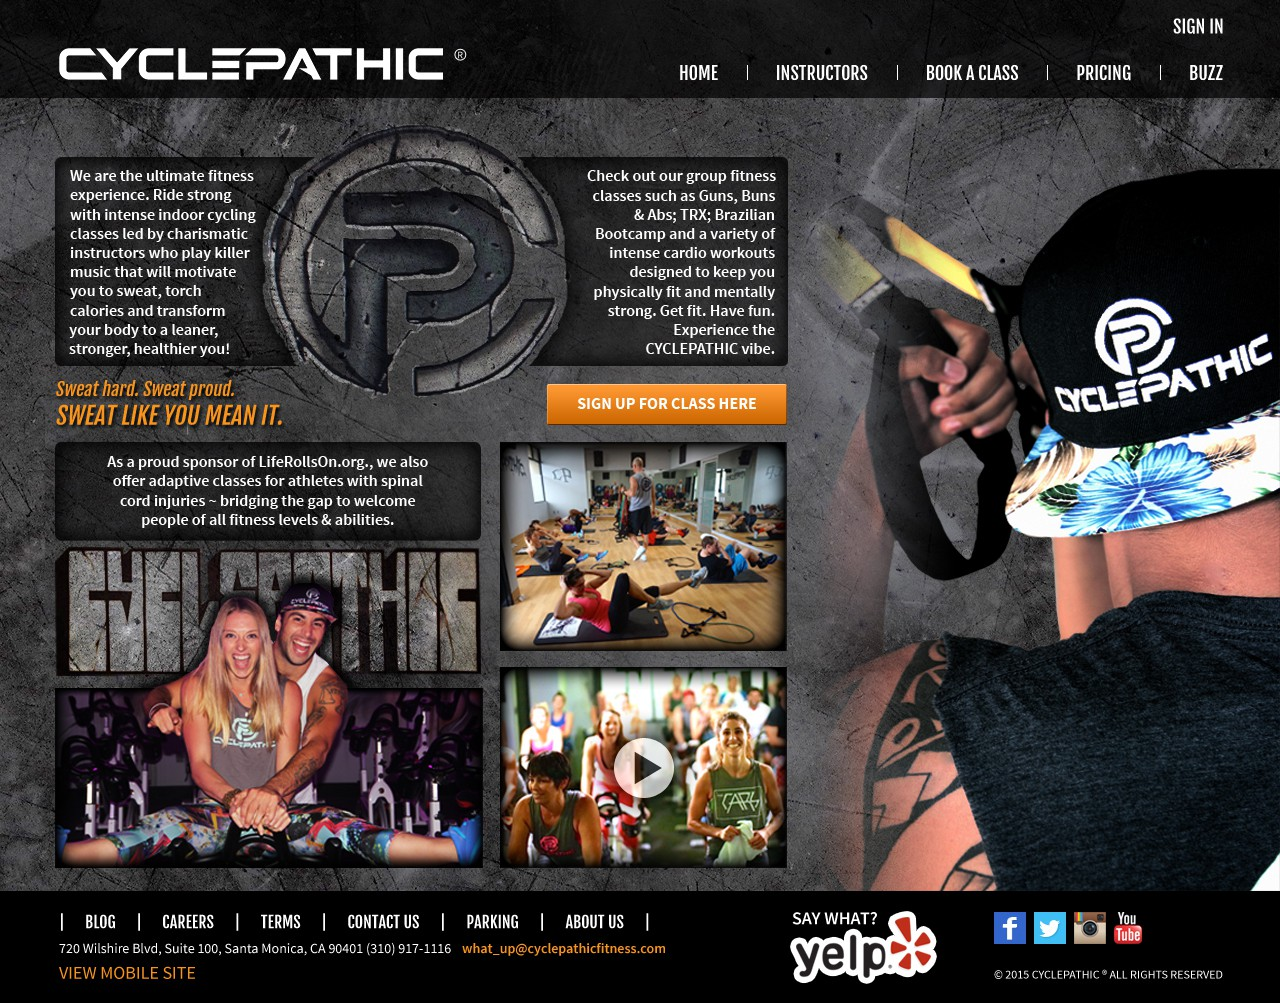 Create an edgy Home Page for our fitness studio, CYCLEPATHIC